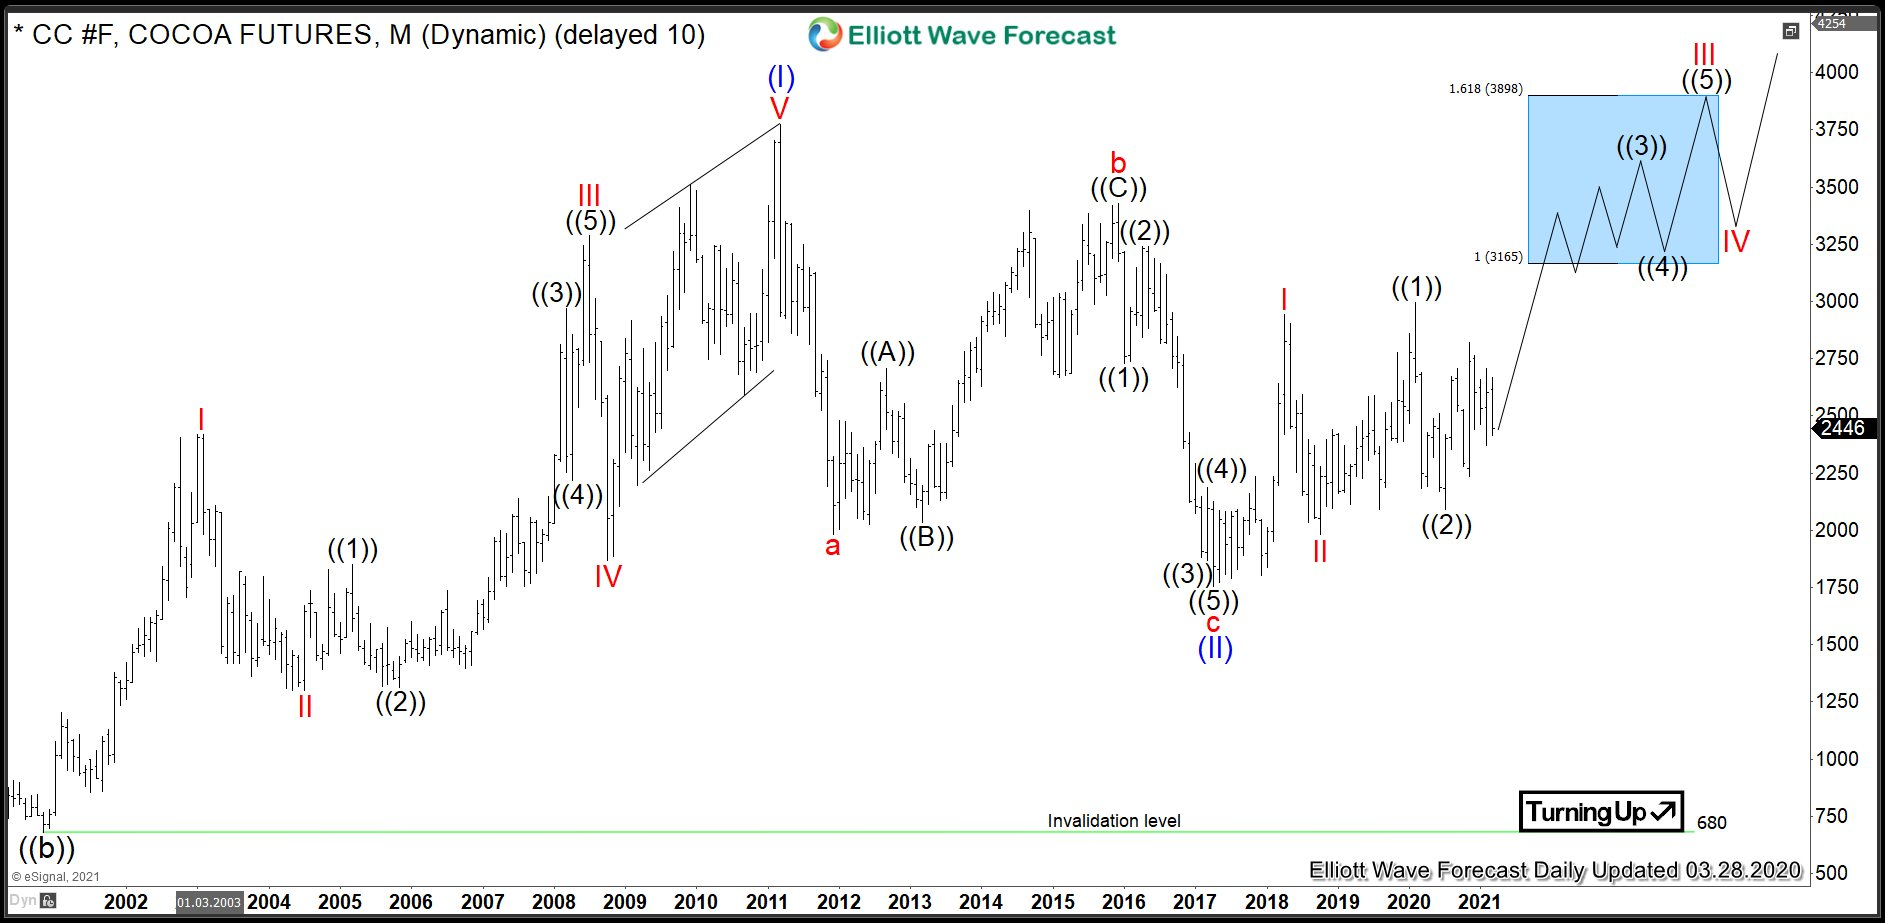 $CC #F: Bullish Sequence to Push Cocoa Prices Higher